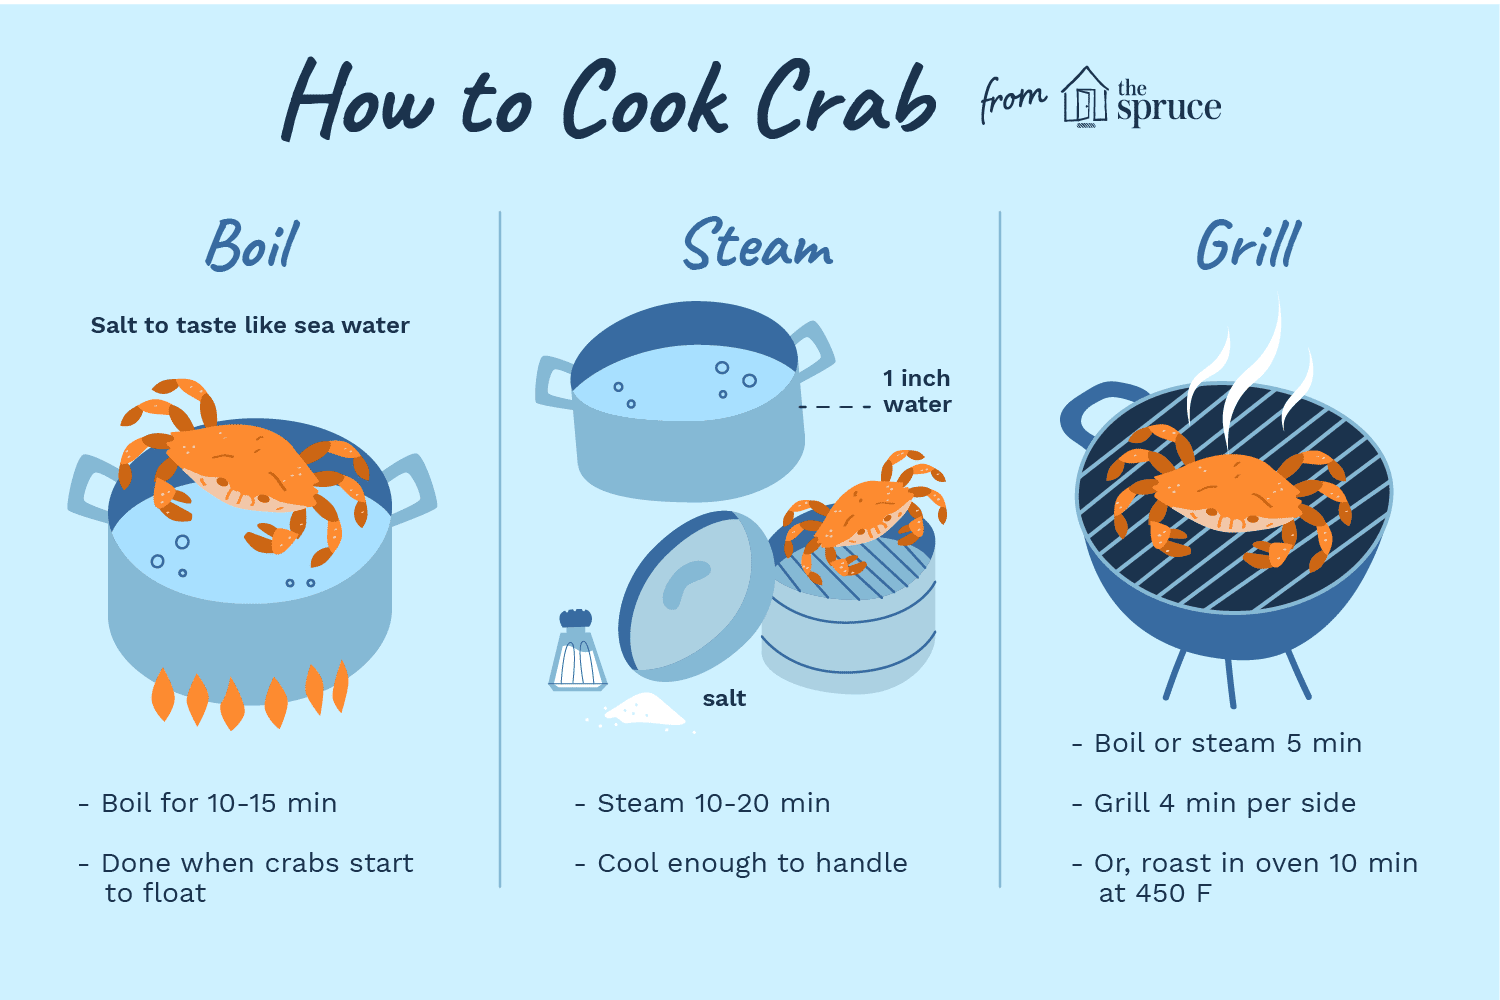 How to cook crab illustration